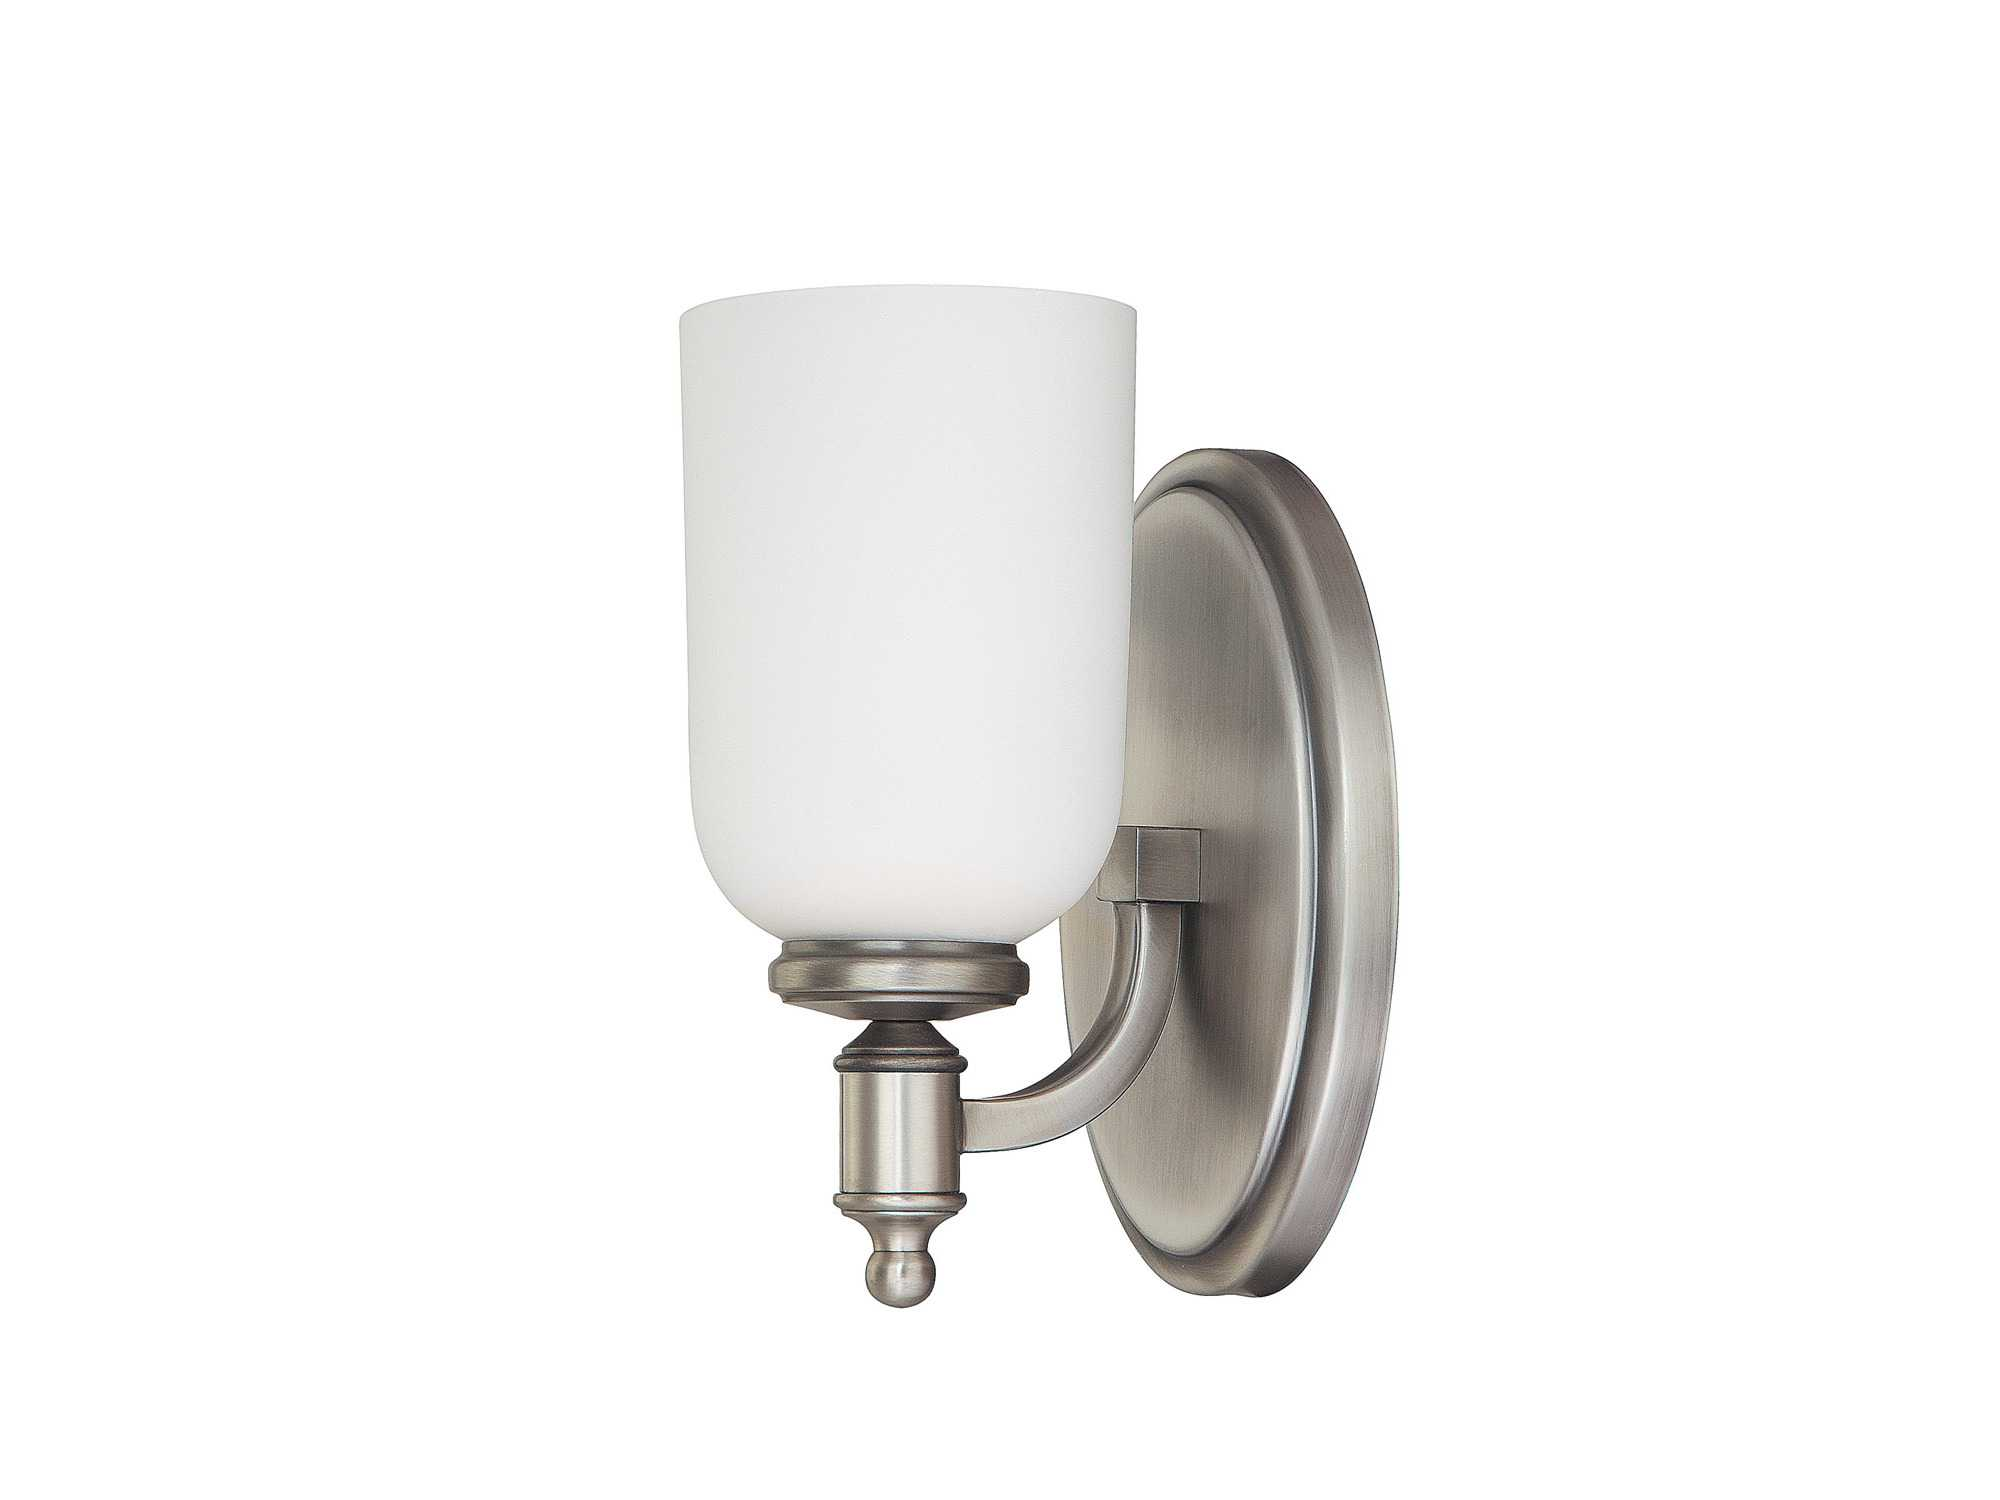 Antique Nickel Wall Sconces : Capital Lighting Covington Antique Nickel Wall Sconce C28441AN102